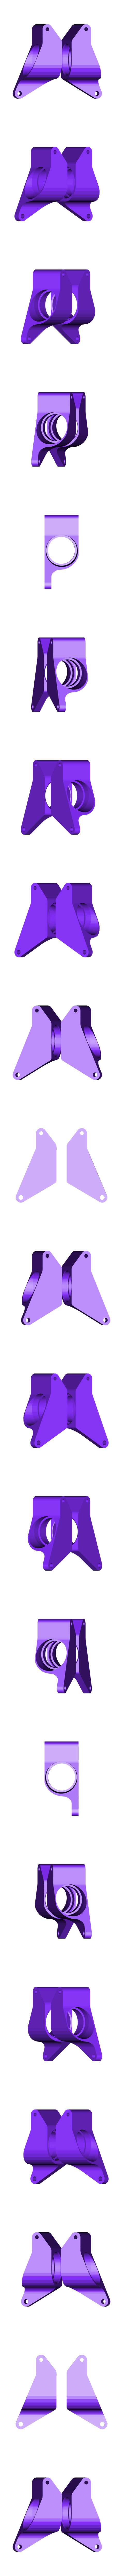 Spindle03.STL Download free STL file Lynx - Fully 3D-printable 1/10 4wd buggy • Object to 3D print, tahustvedt